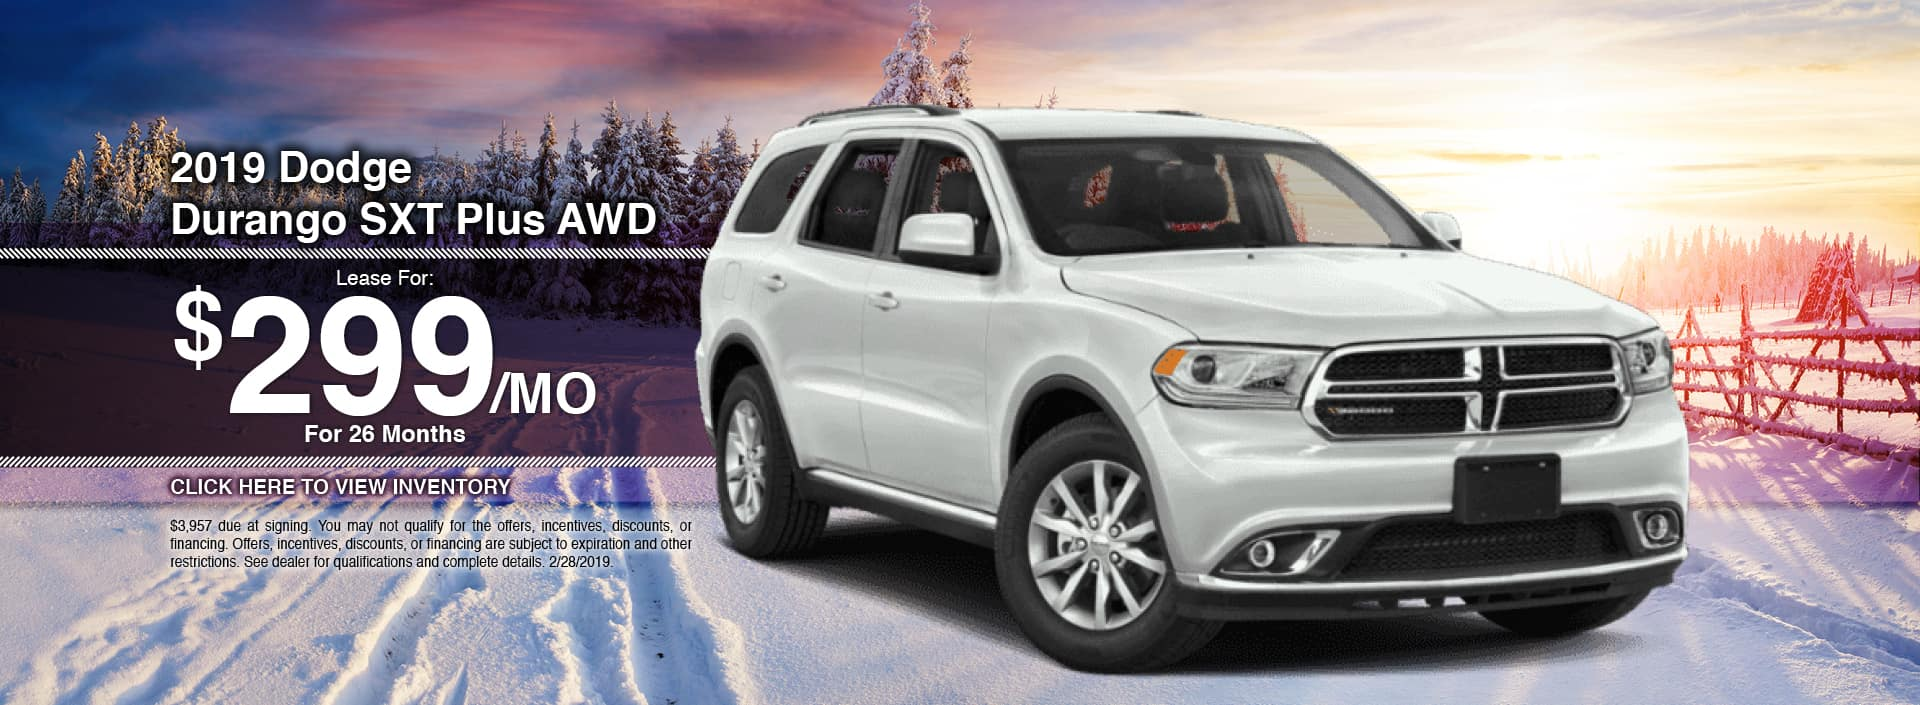 New 2019 Dodge Durango for sale in Waseca, MN